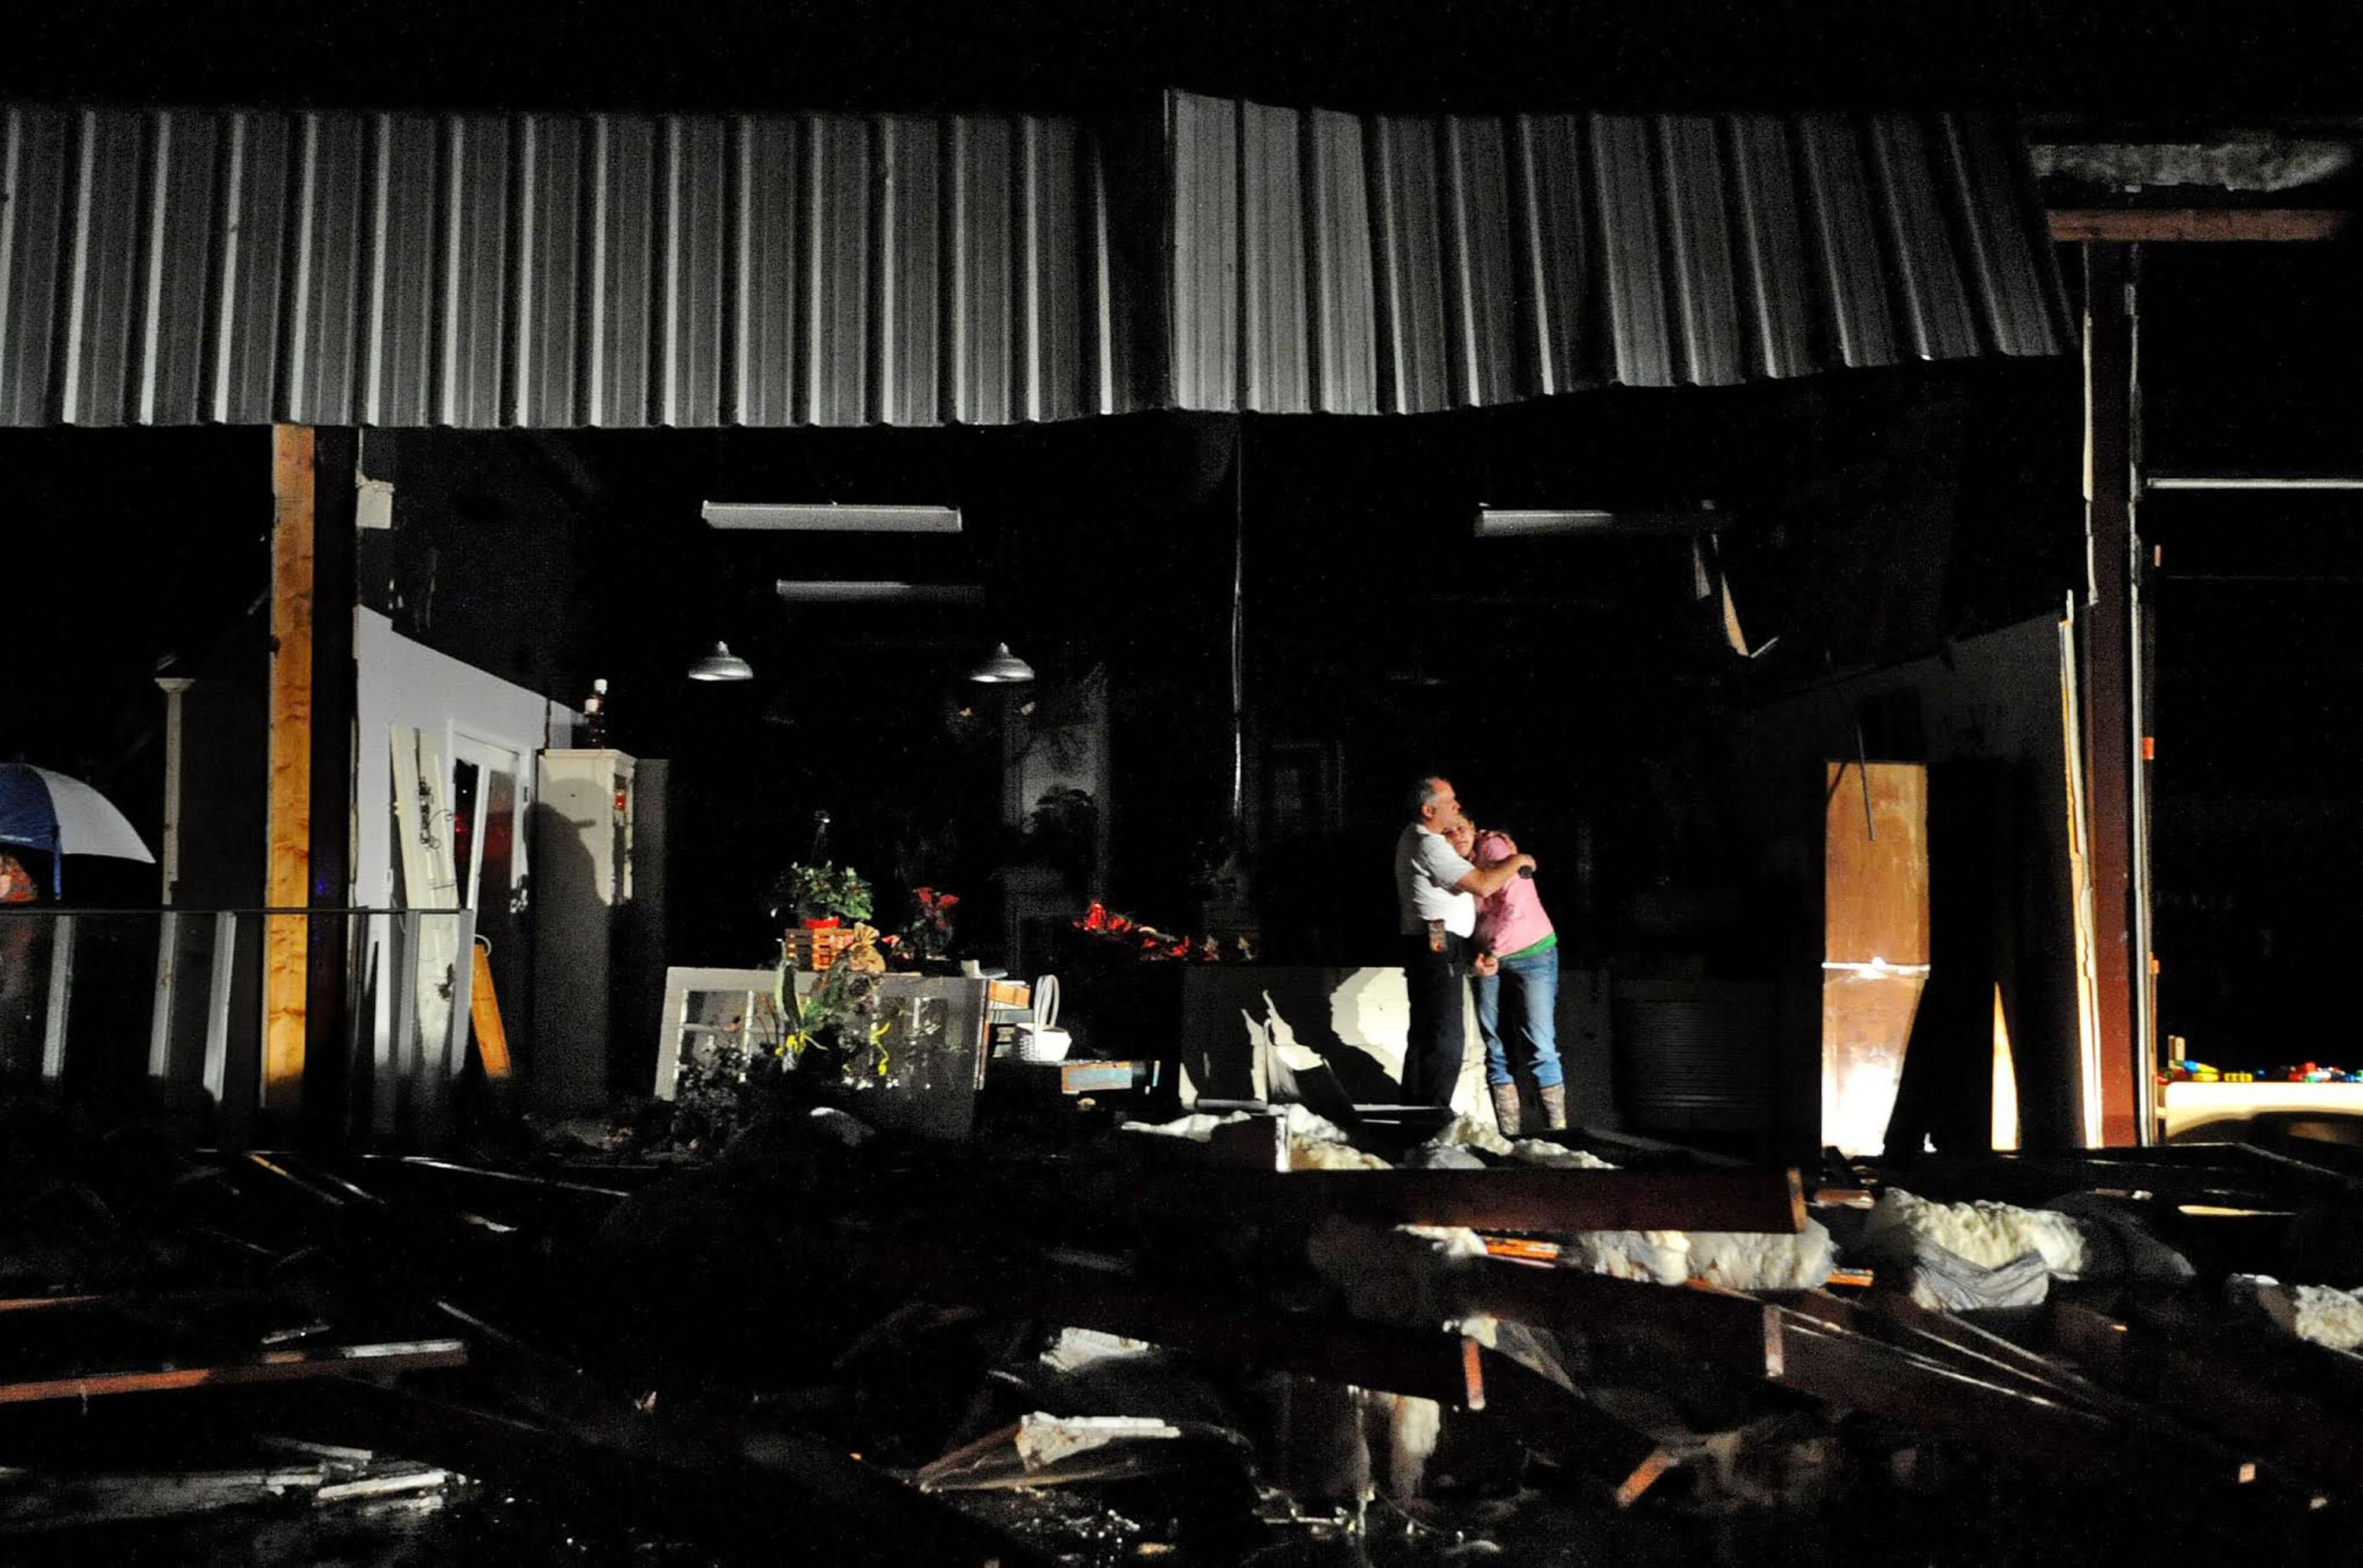 Severe storms slam the South, killing at least 4